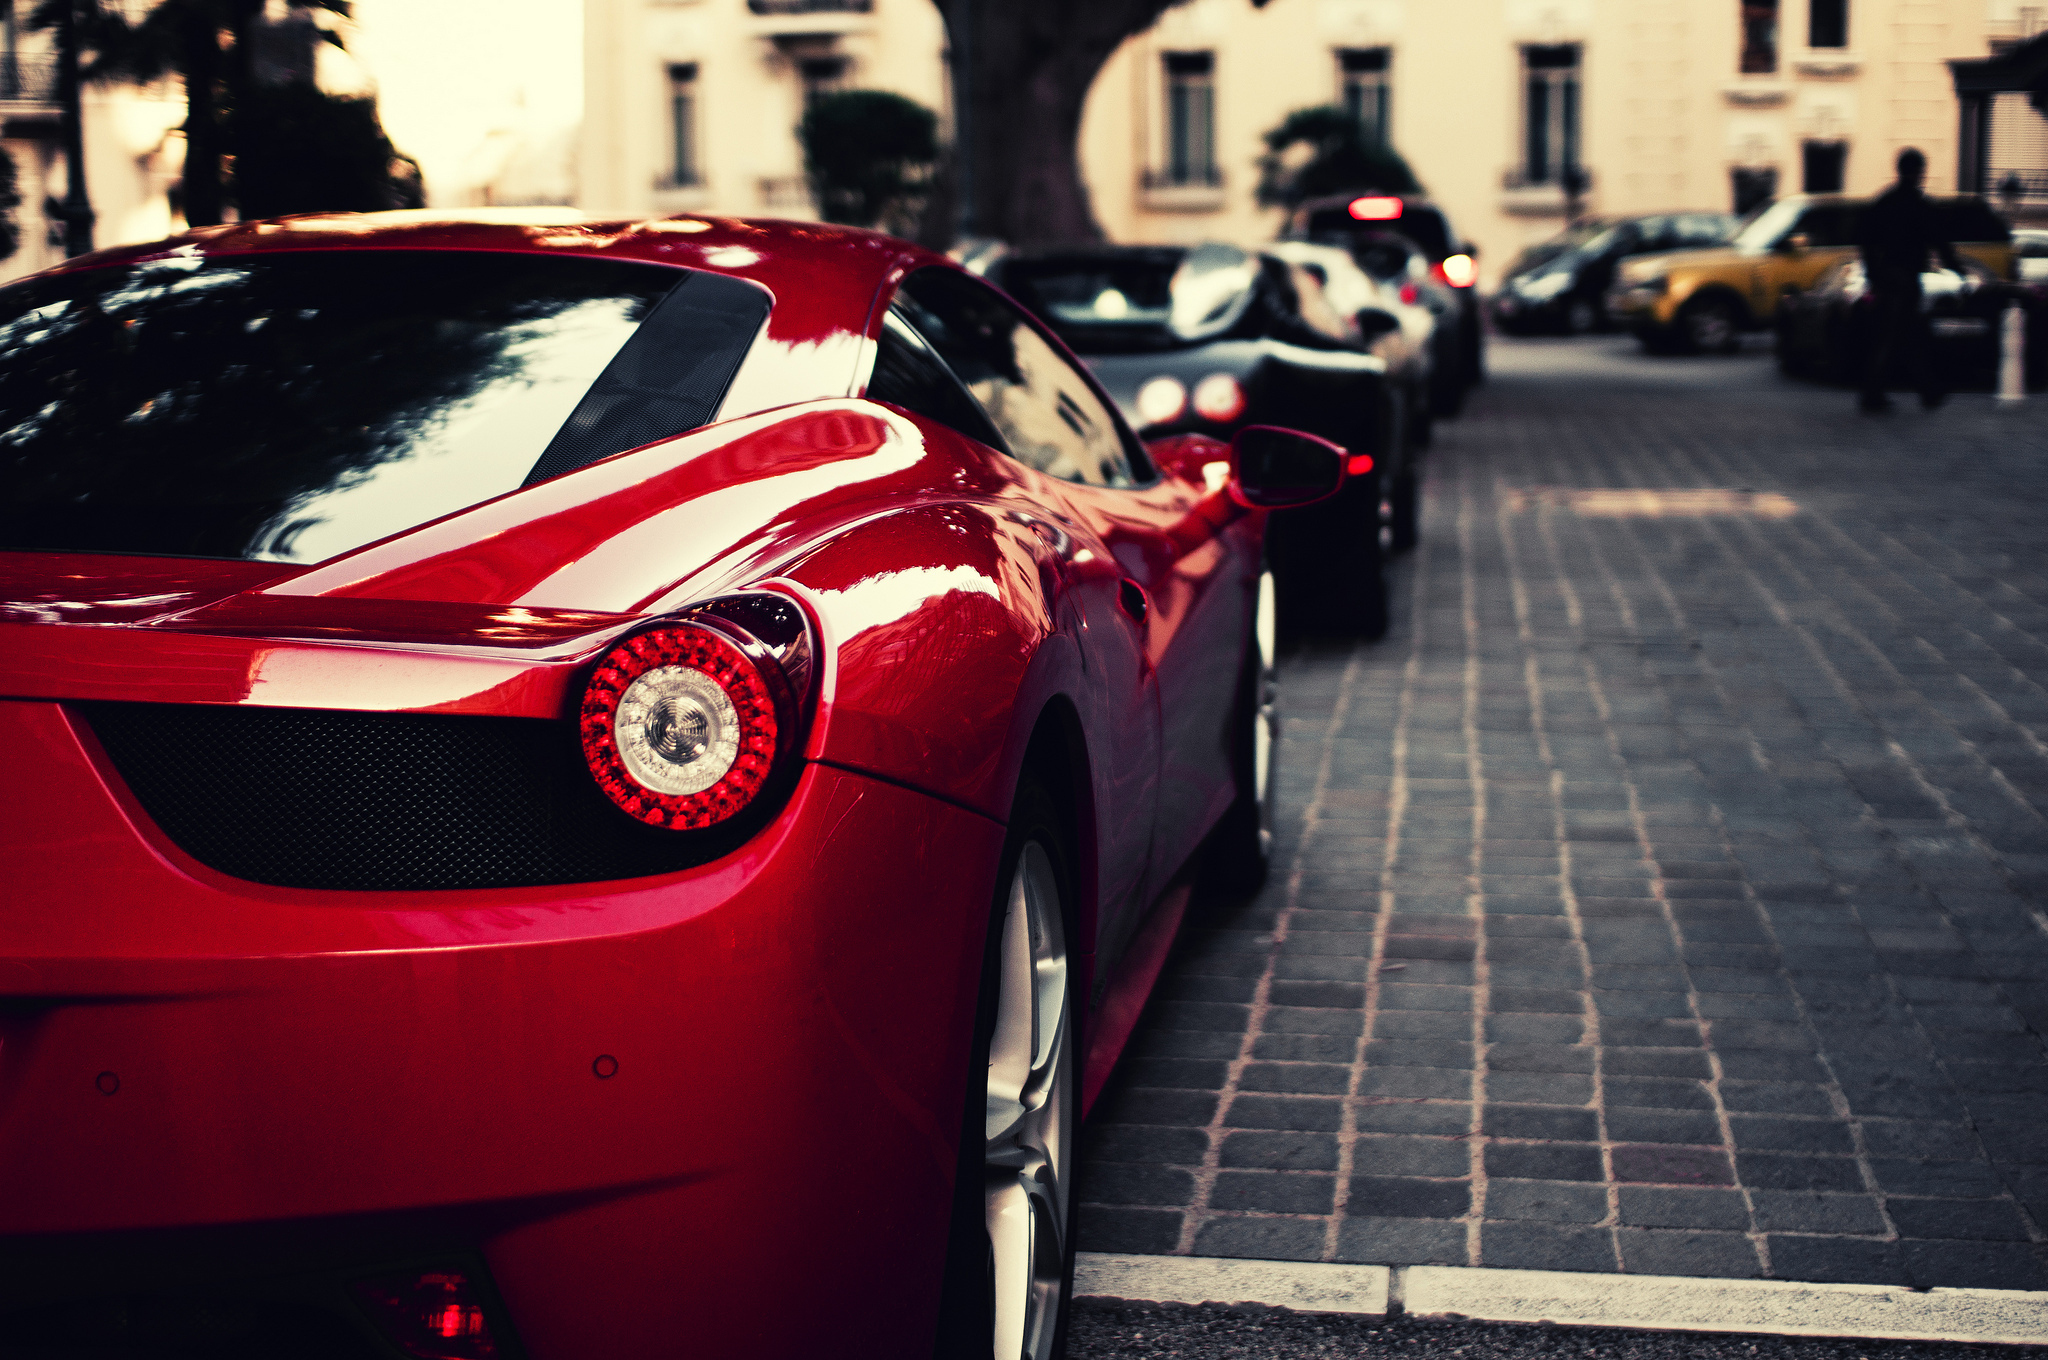 hd wallpaper background id464759 2048x1360 vehicles ferrari 458 italia 9 like - Ferrari 458 Italia Wallpaper 19201080